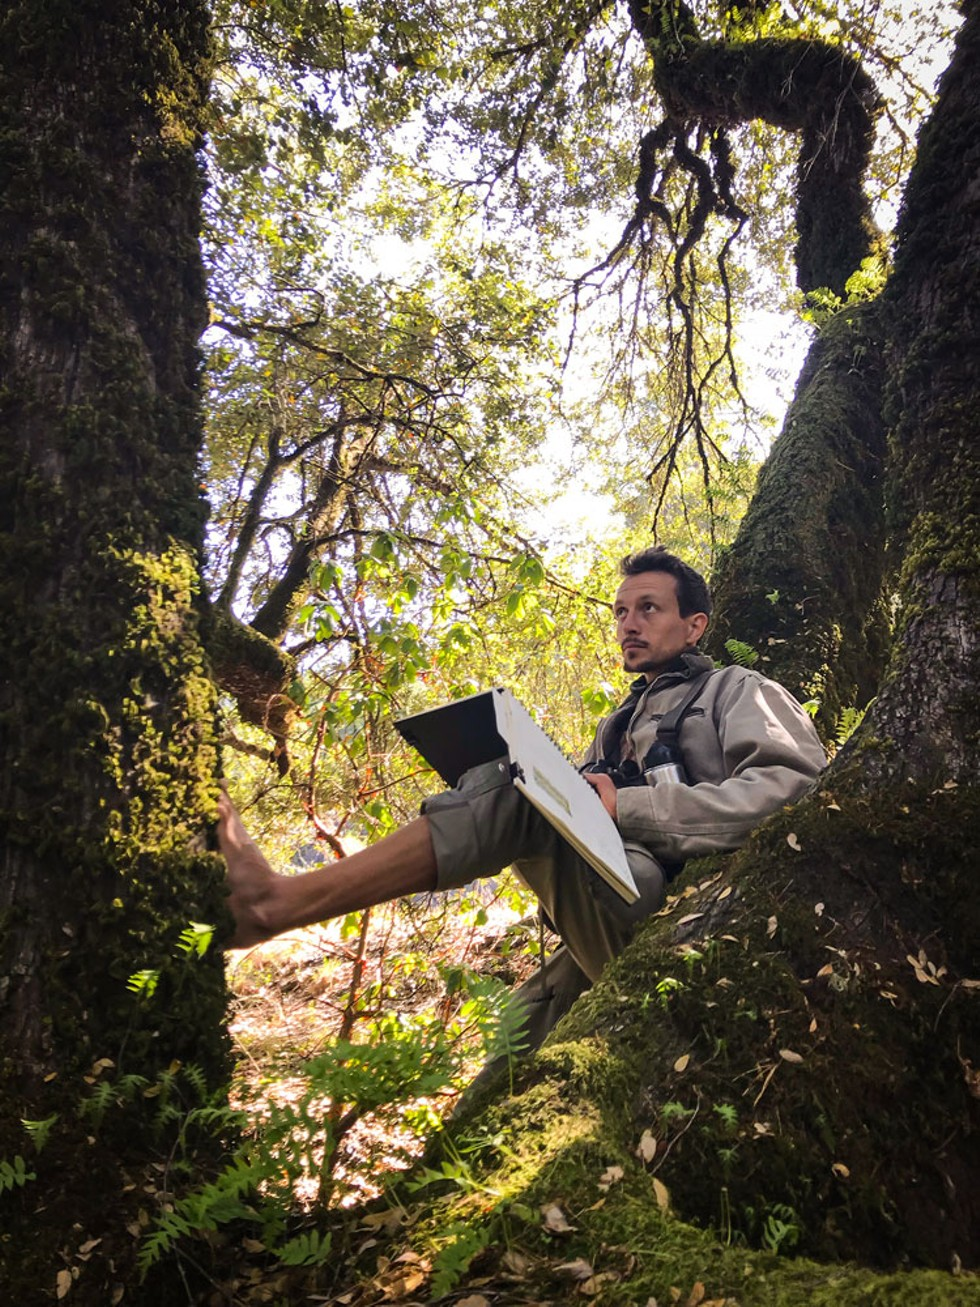 Marley Peifer nature journaling as part of an effort to demystify controlled burns. - PHOTO BY LAURIE WIGHAM.